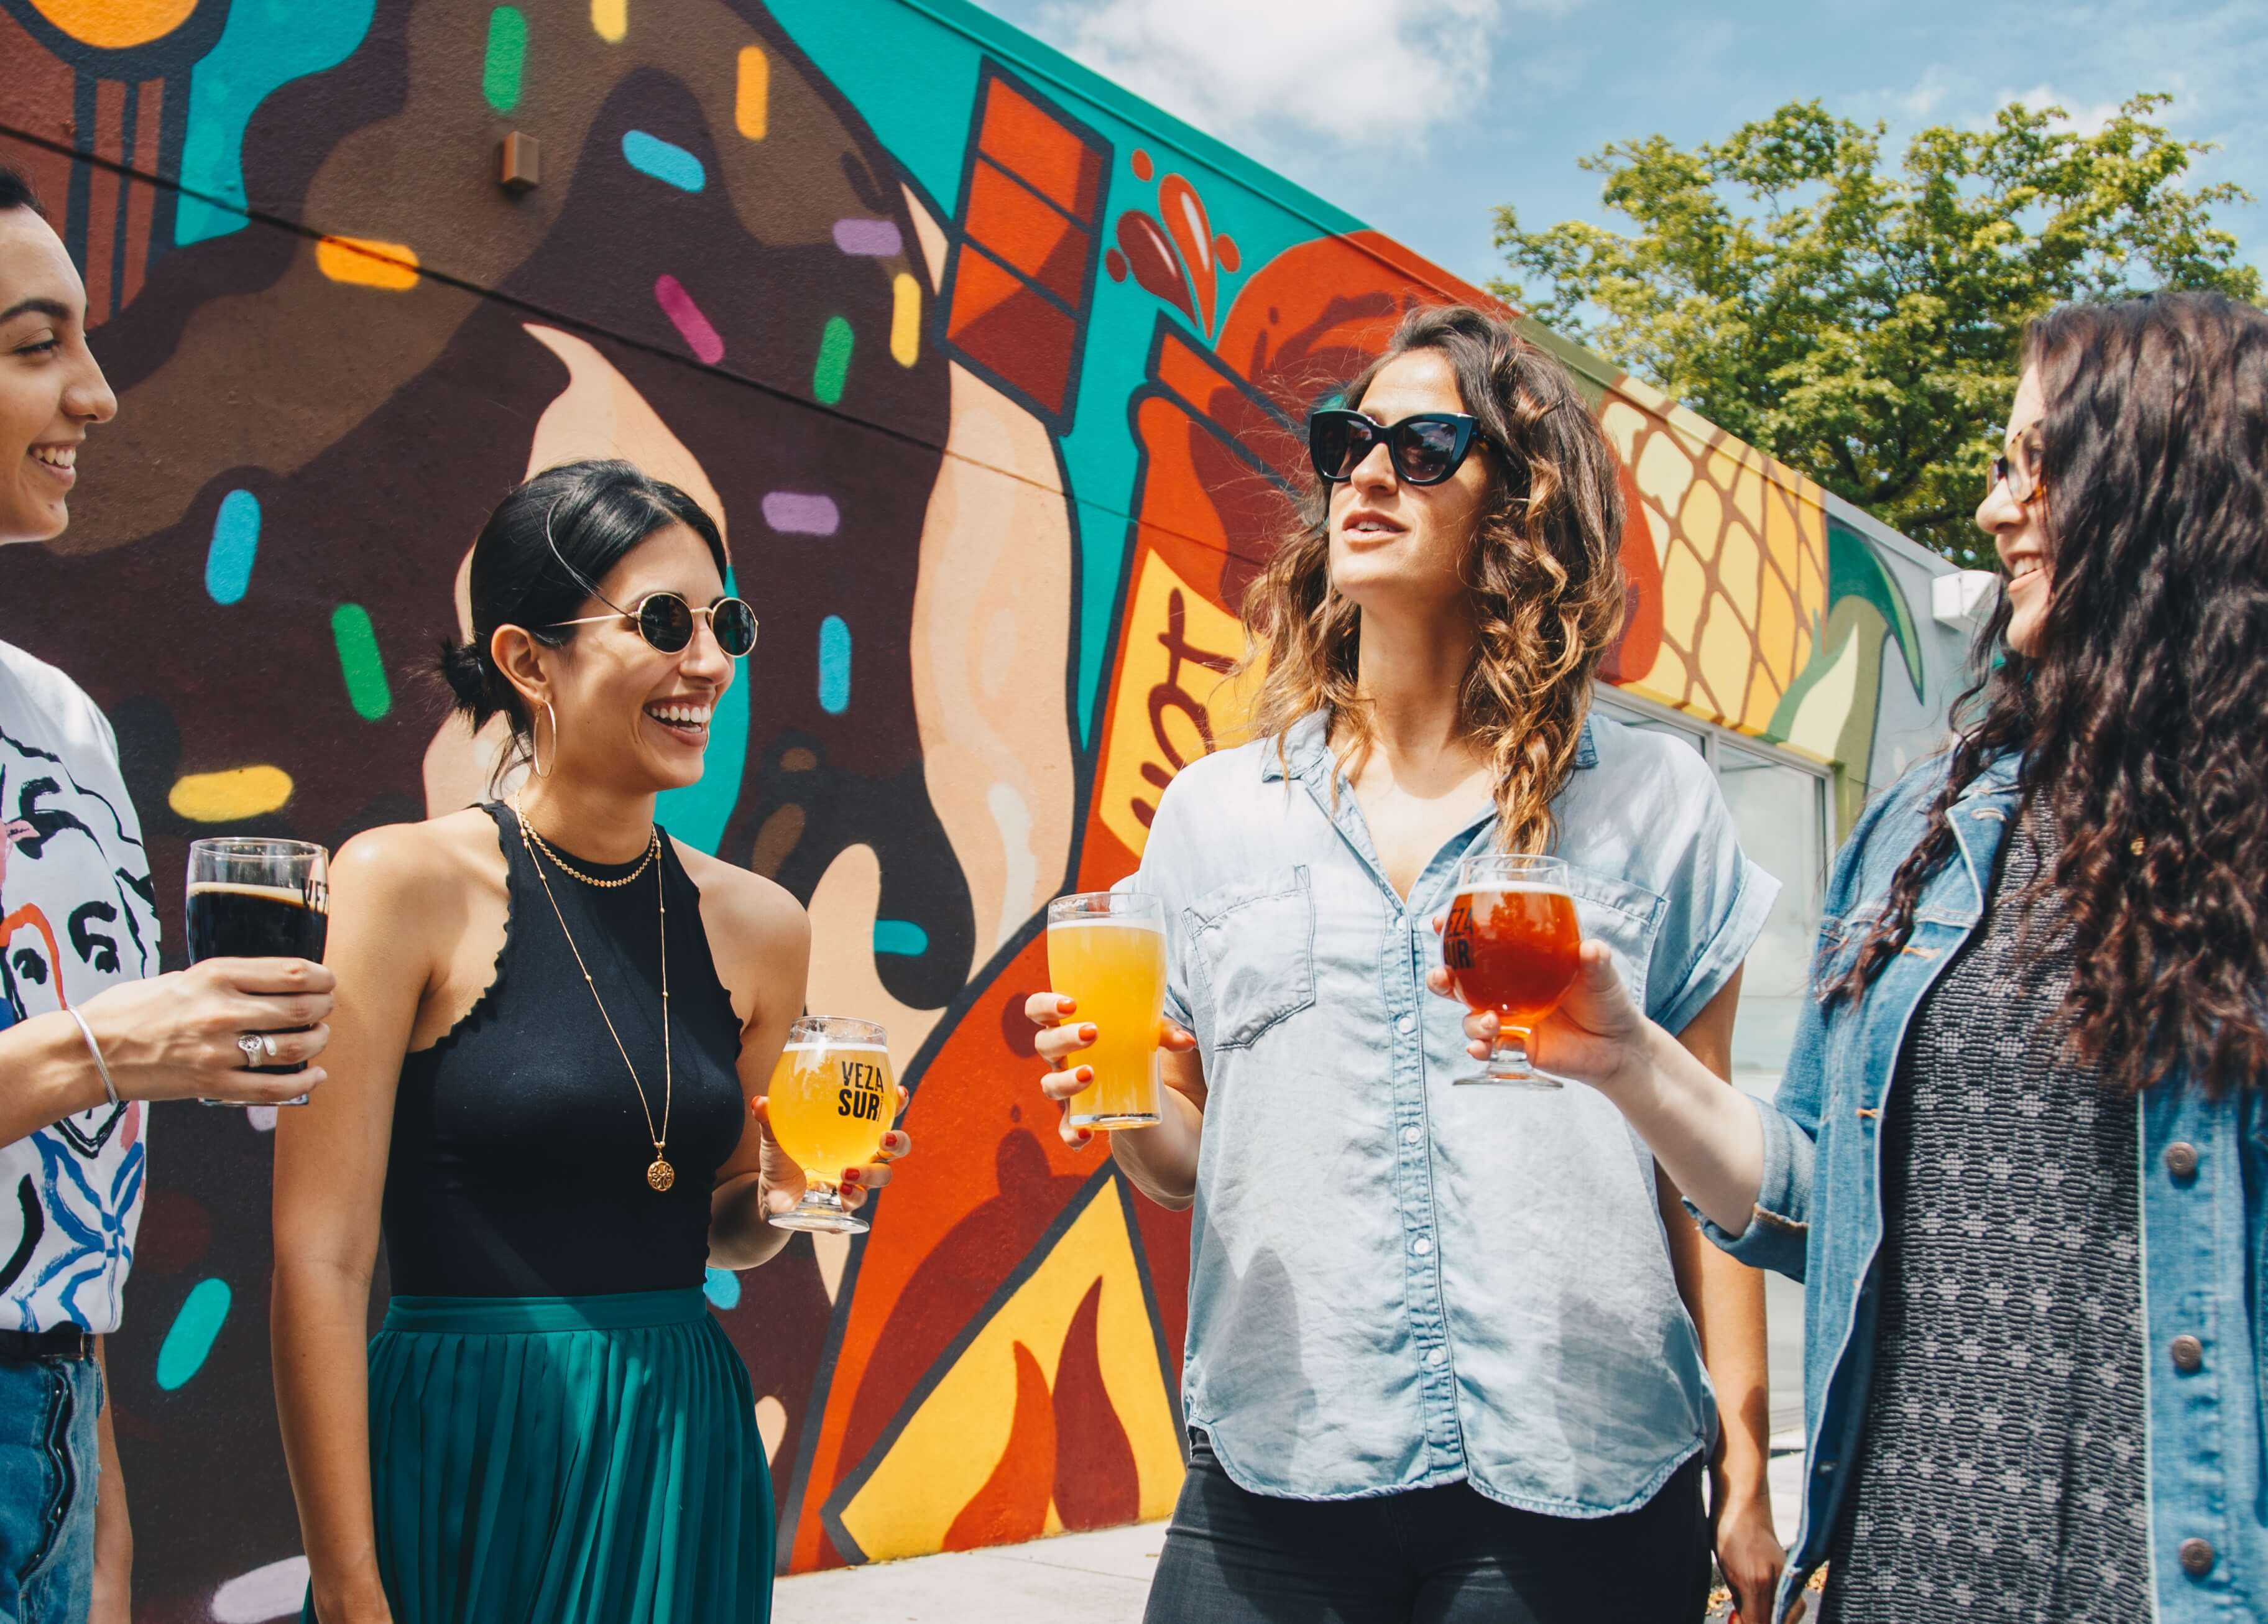 Four women drinking local wares in a Missouri neighborhood